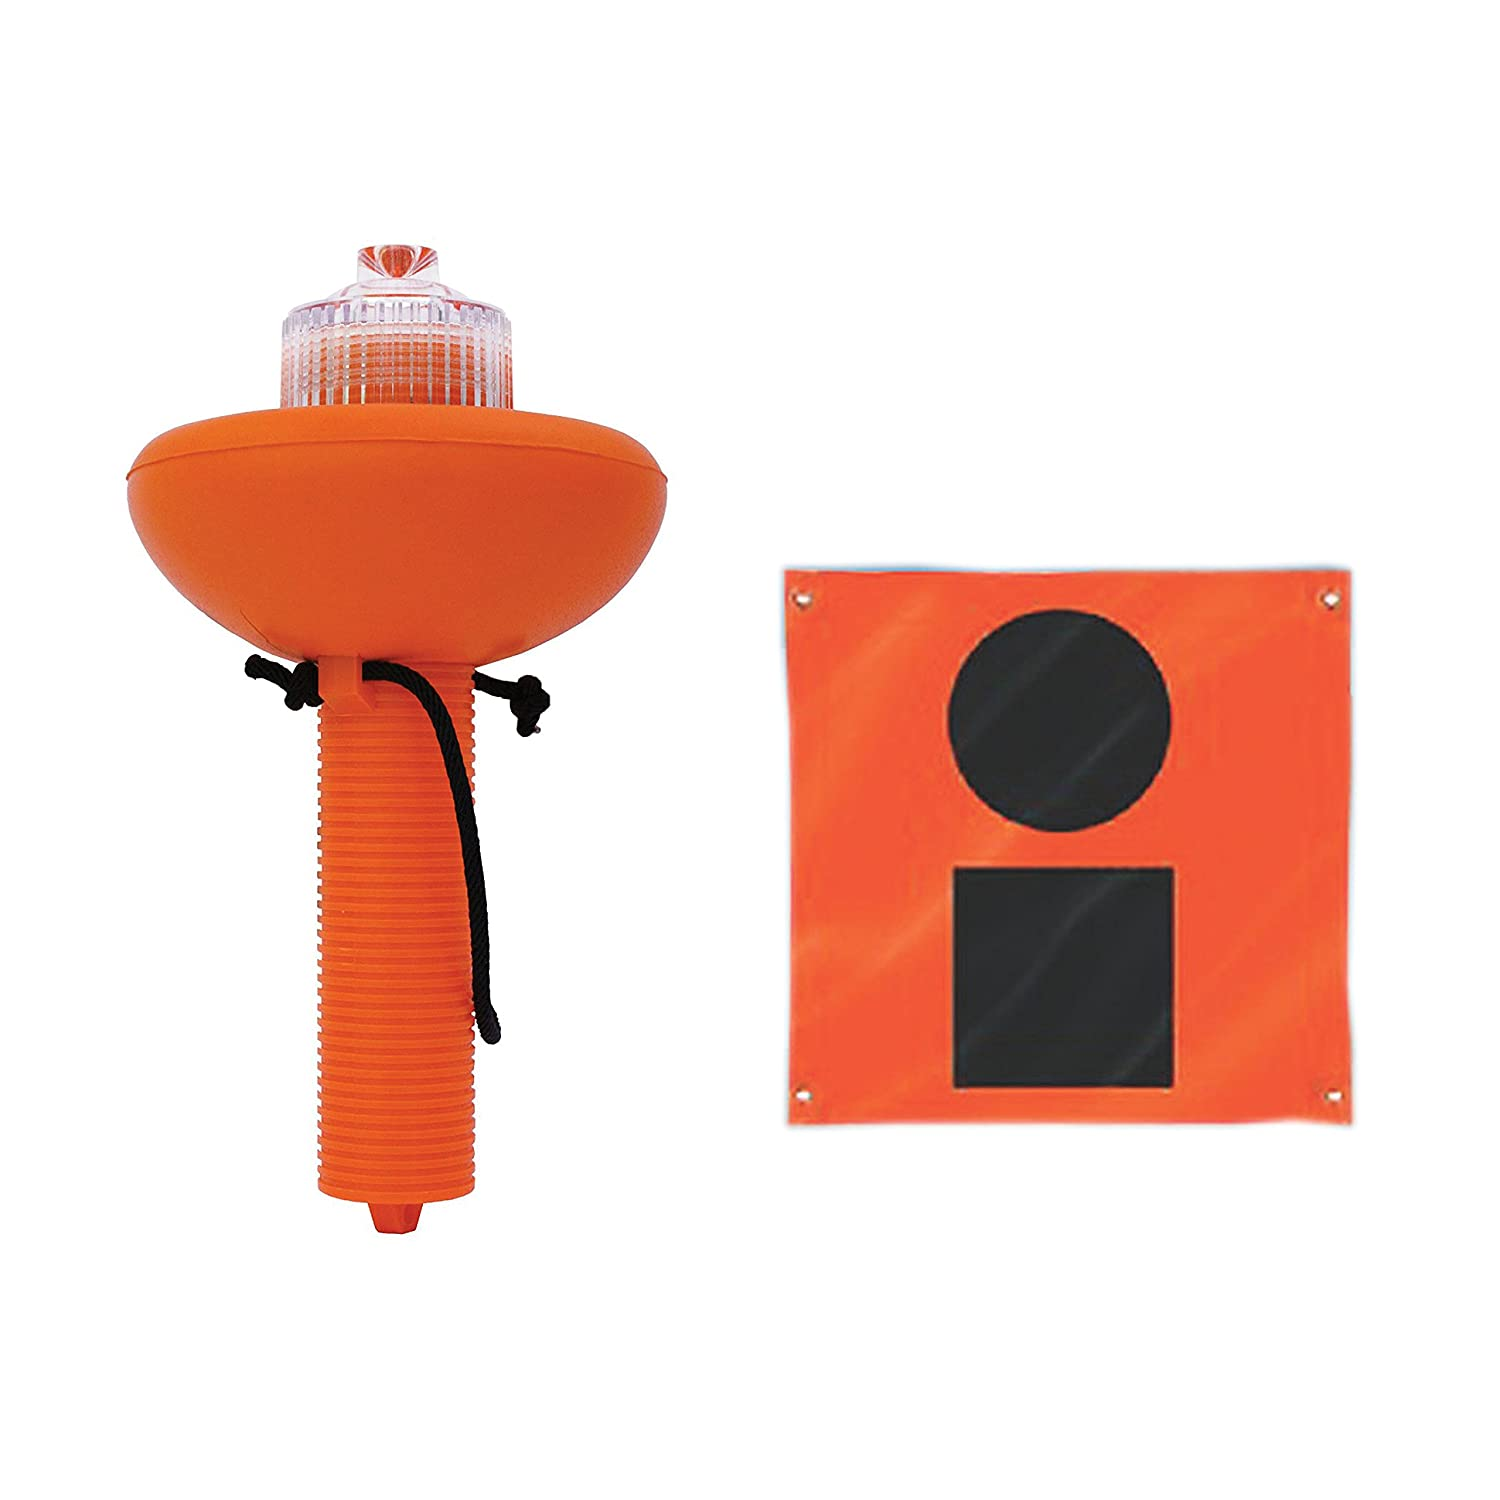 SOS DISTRESS LIGHT, THE ONLY ALTERNATIVE TO TRADITIONAL FLARES